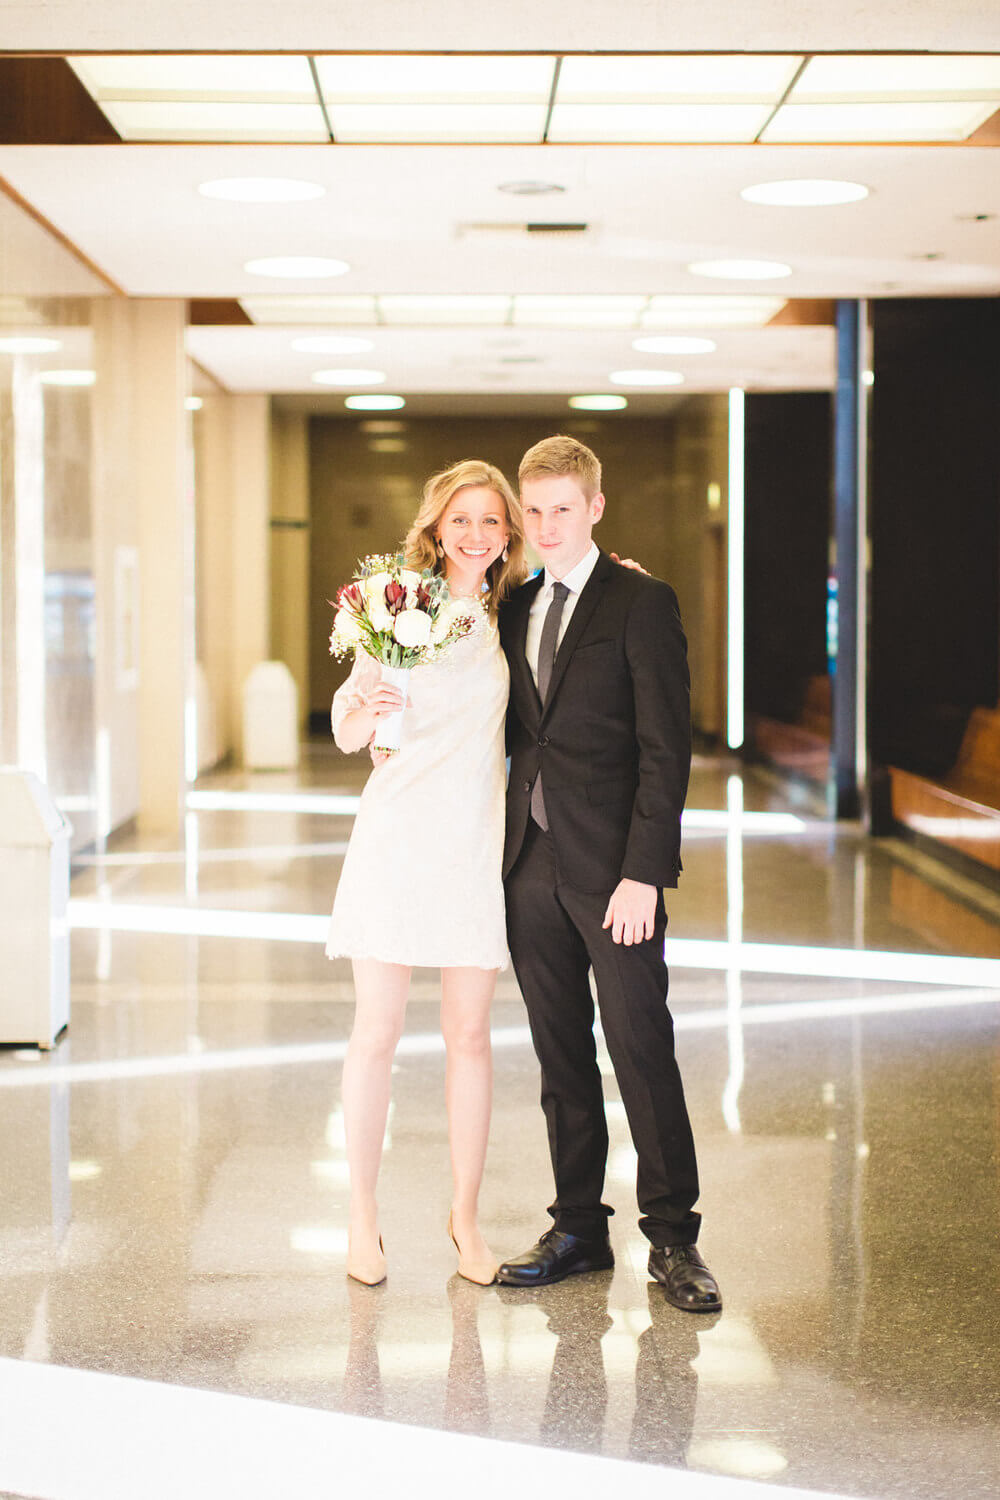 the-light-and-glass-wedding-engagement-photography-20151218-004.jpg